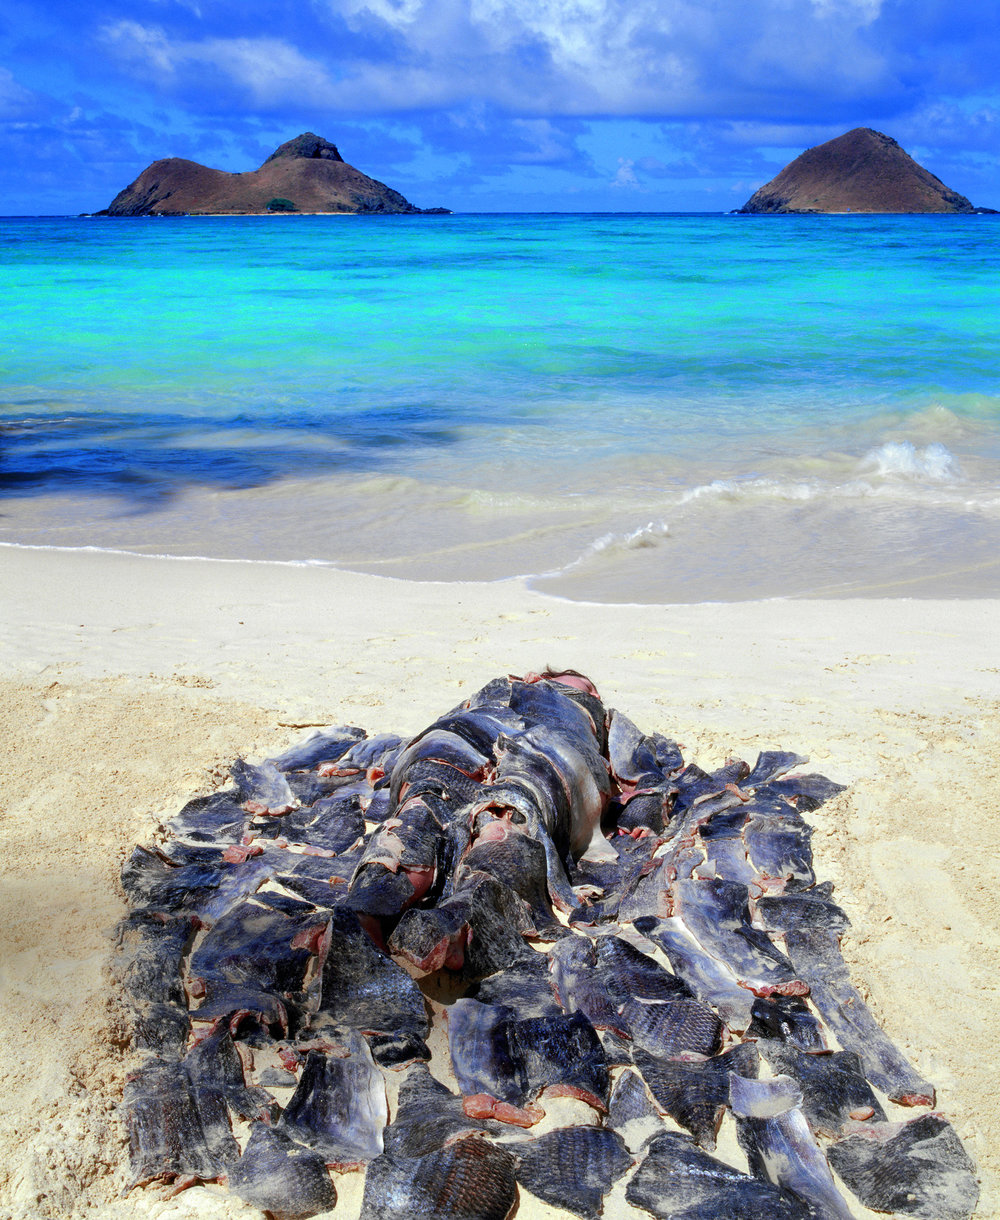 Fishskin Blanket Amidst the Mokulua's / I'a Kapa (Fish Covering)